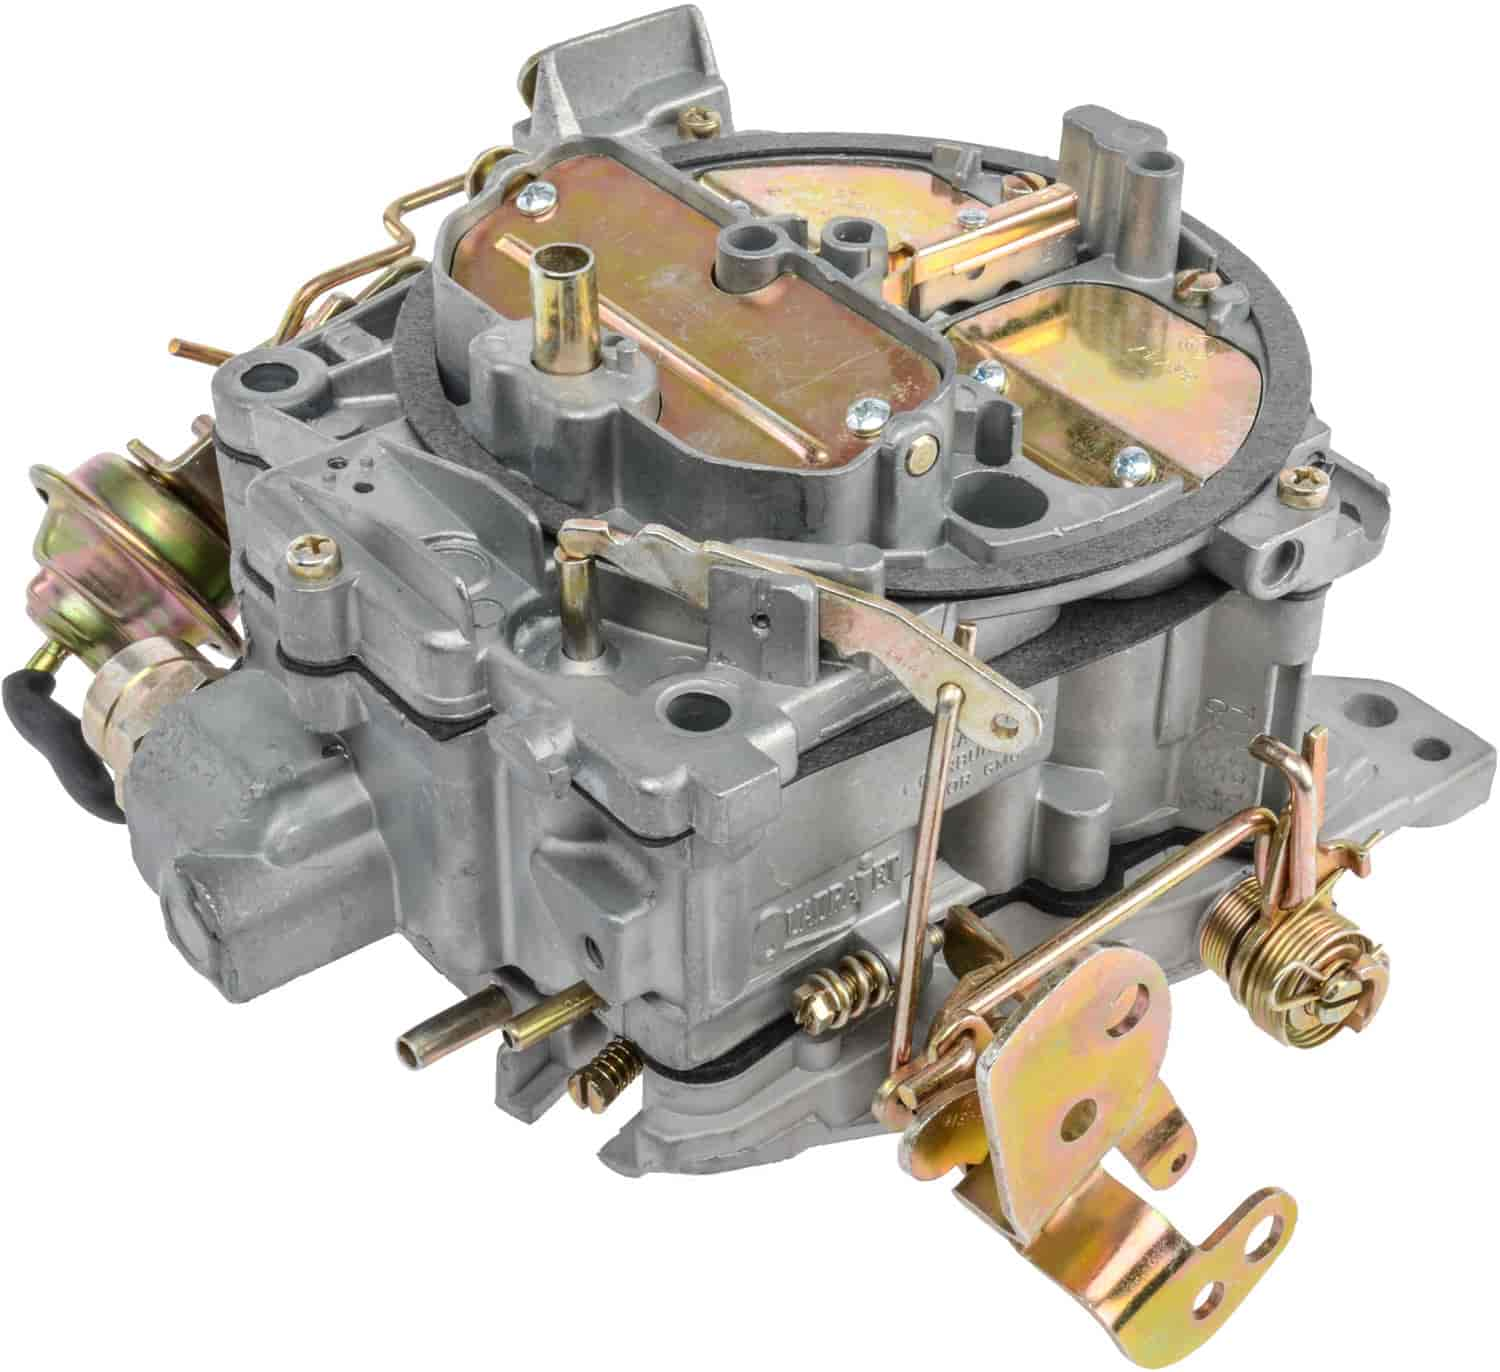 JEGS Performance Products 15802 - JEGS 4-bbl Remanufactured Quadrajet Carburetors